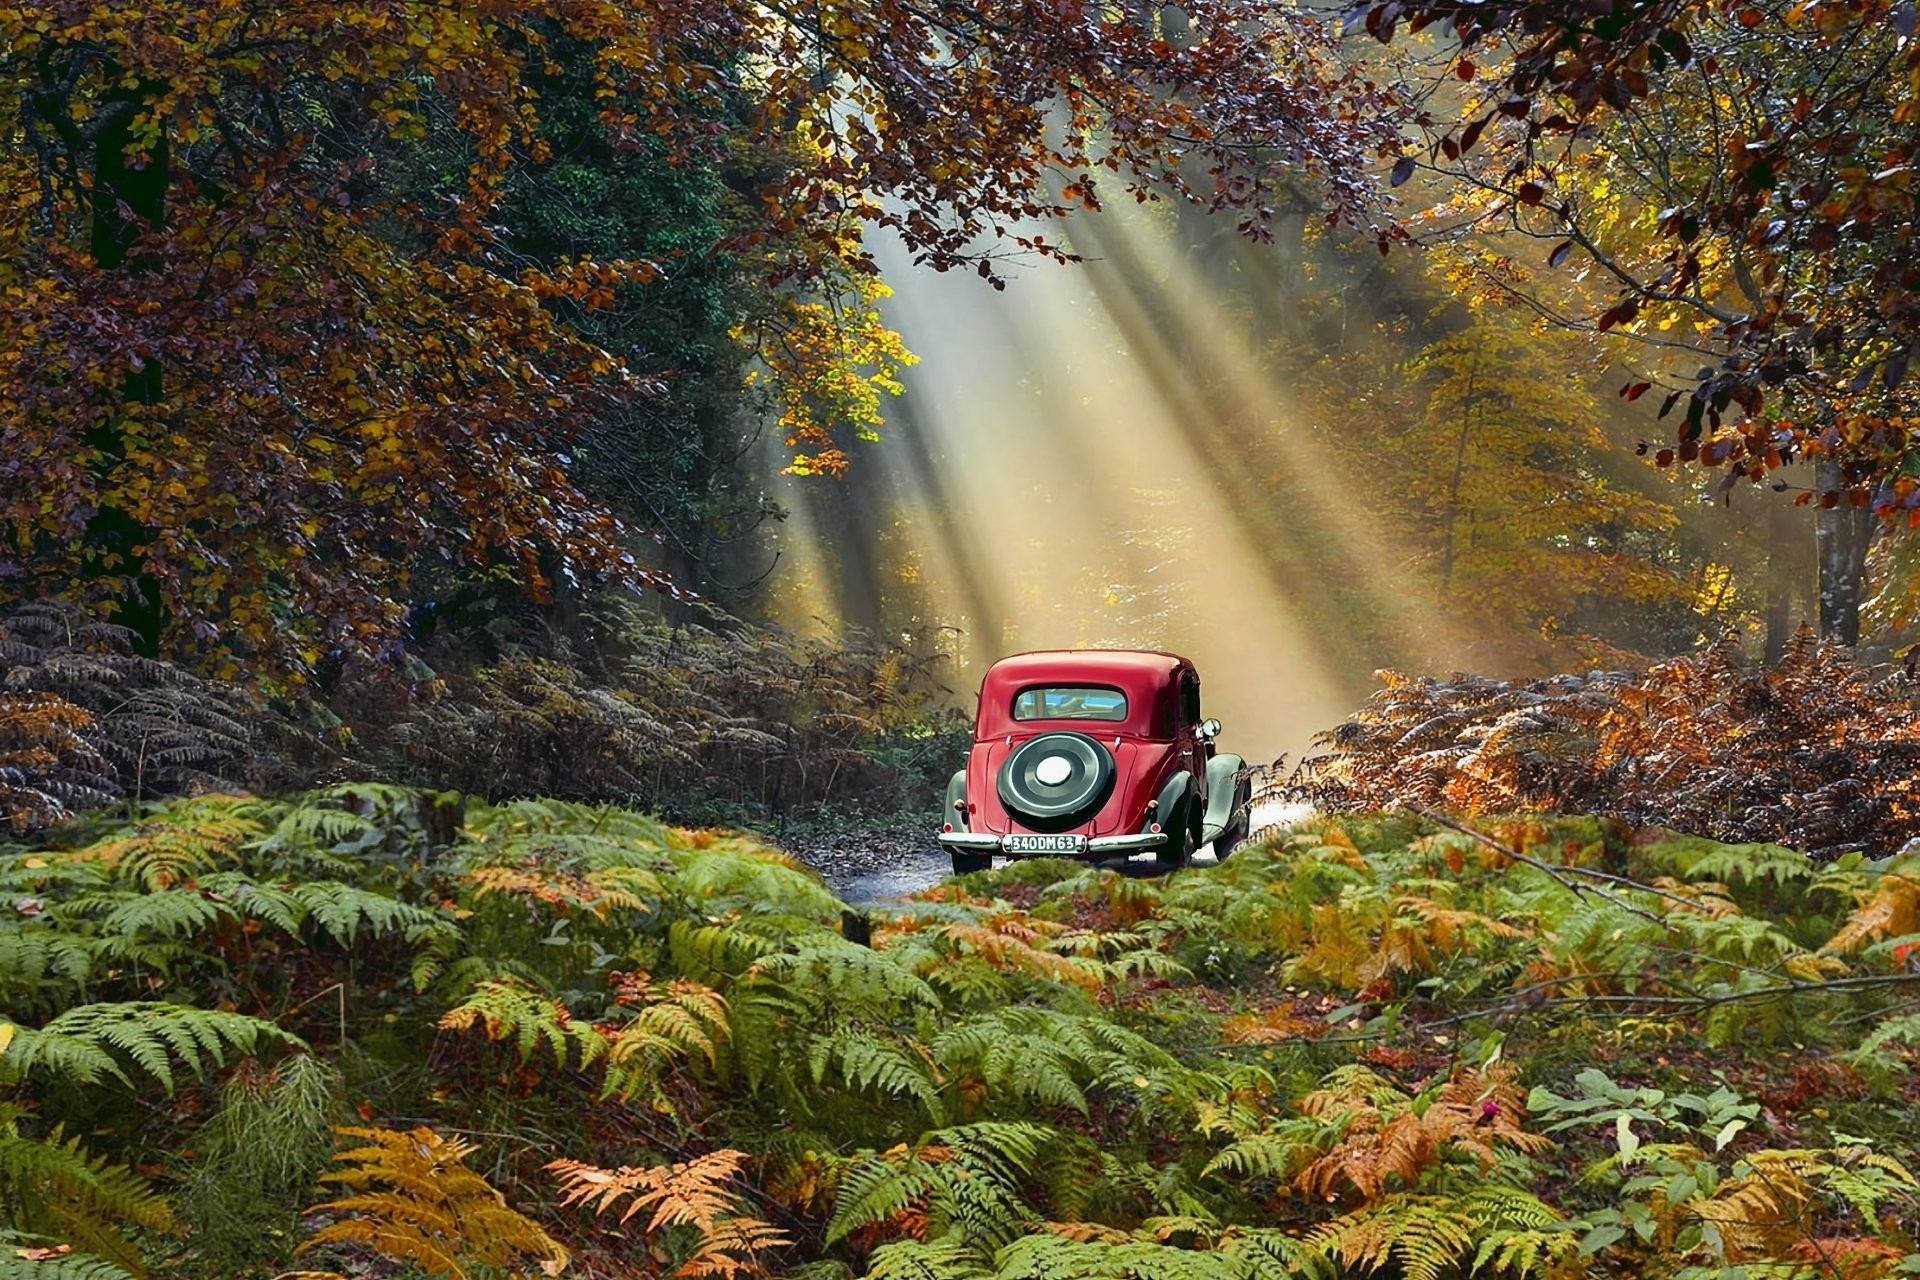 1920x1280 Vehicles - Vintage Car Sunbeam Vehicle Car Road Fall Foliage Wallpaper